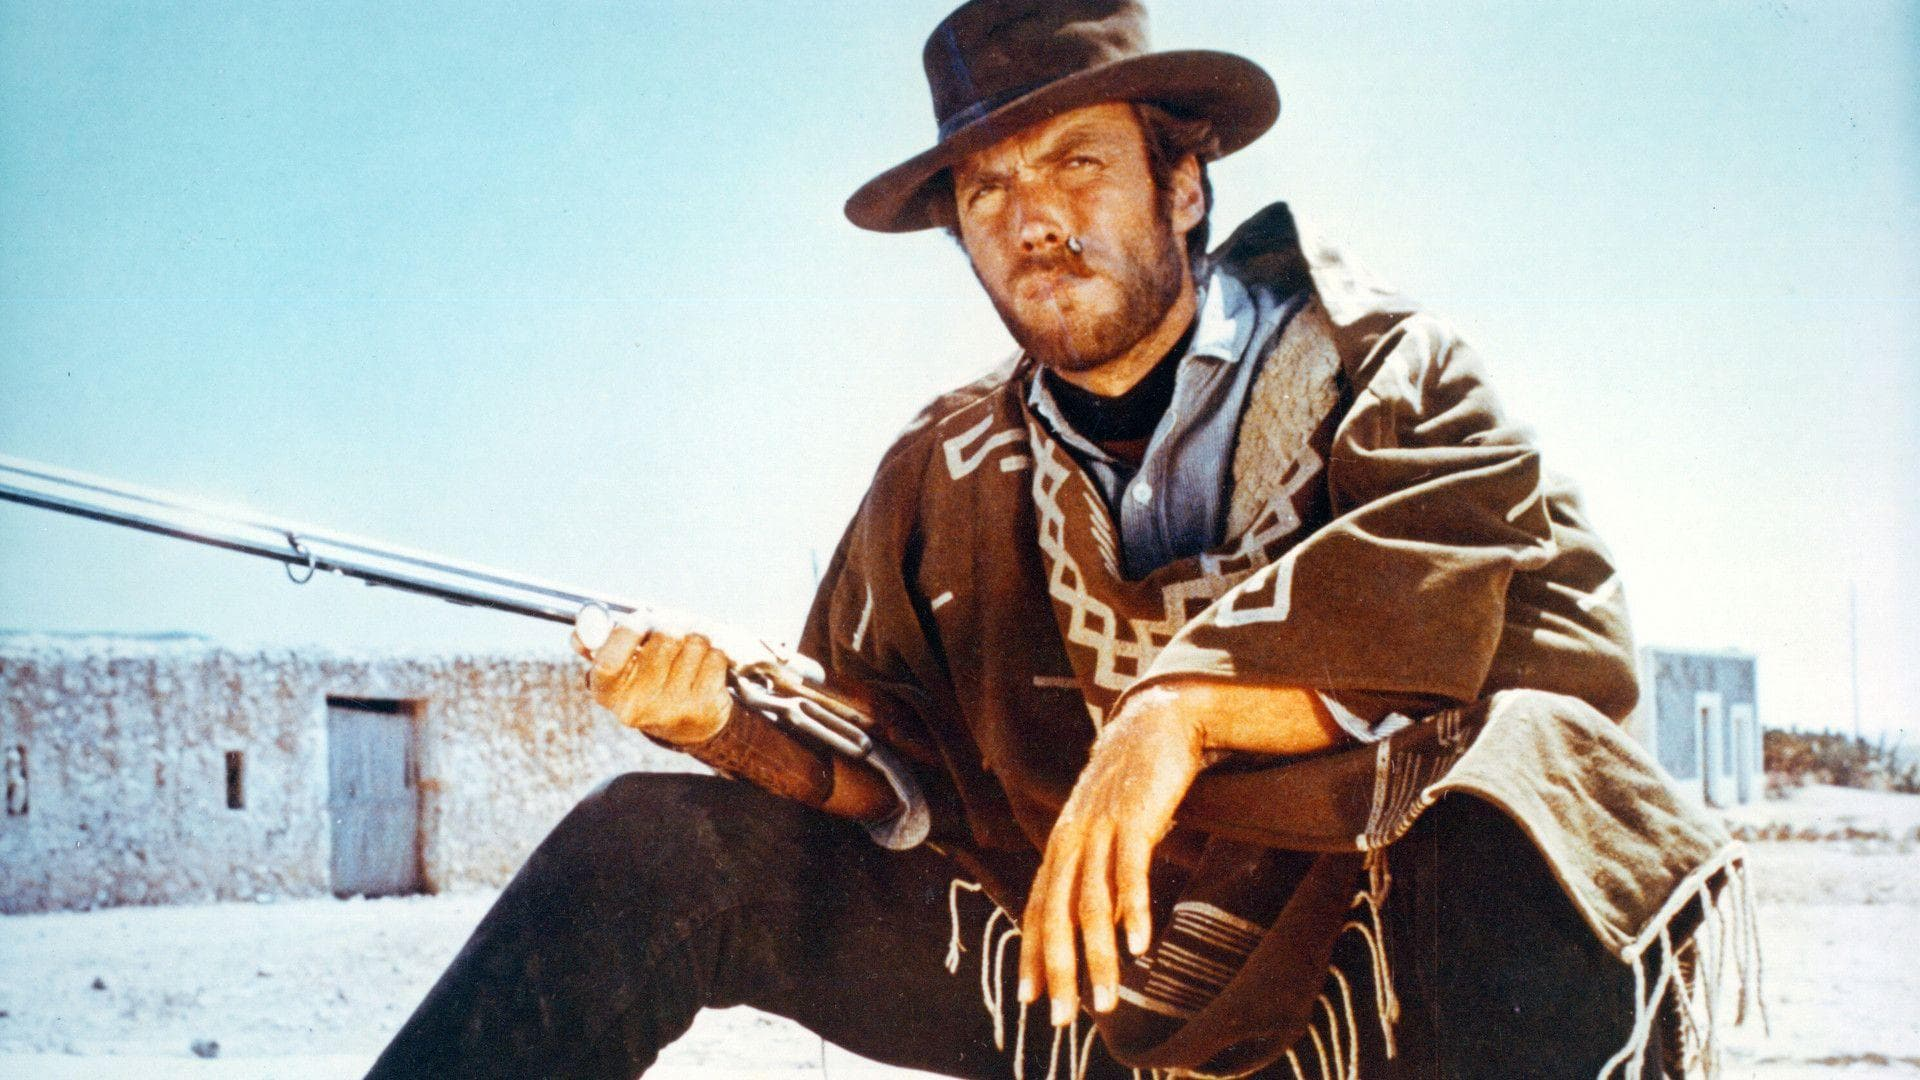 Image of Random Fictional Wild West Gunslinger Win In A Free-For-All Shootout